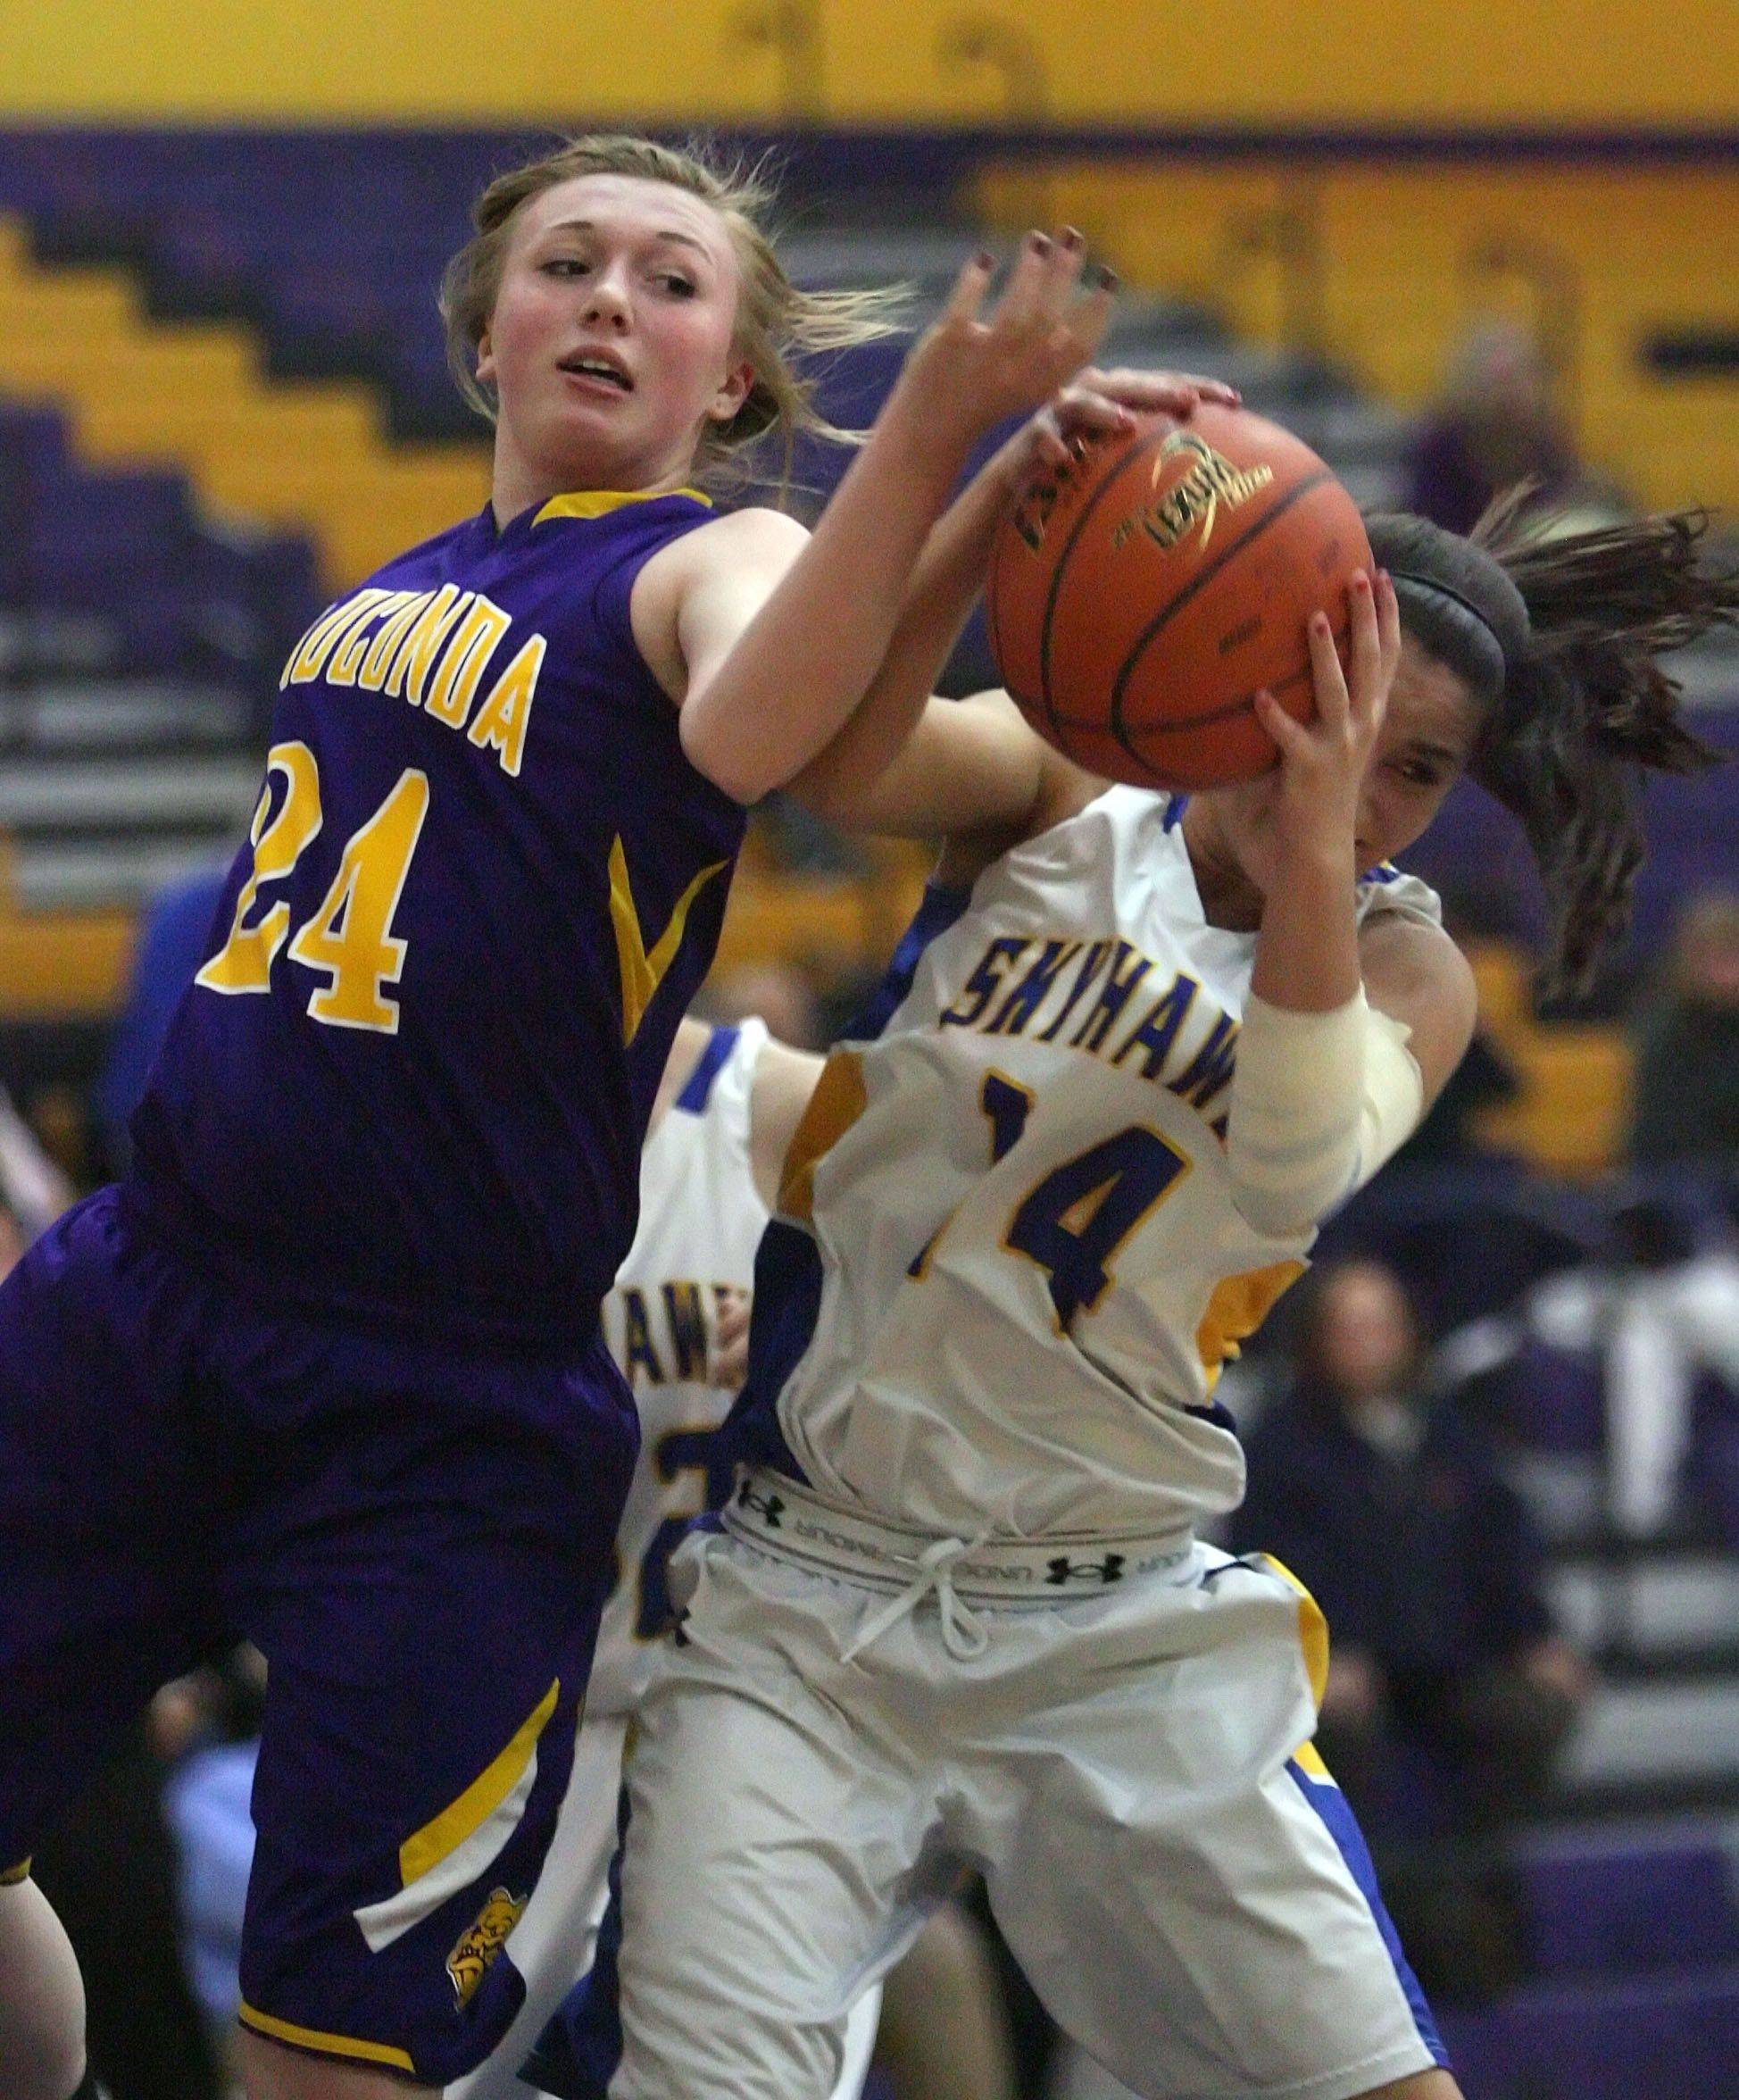 Wauconda's Melissa Latham, left, and Johnsburg's Tayelor Neiss battle for a rebound.